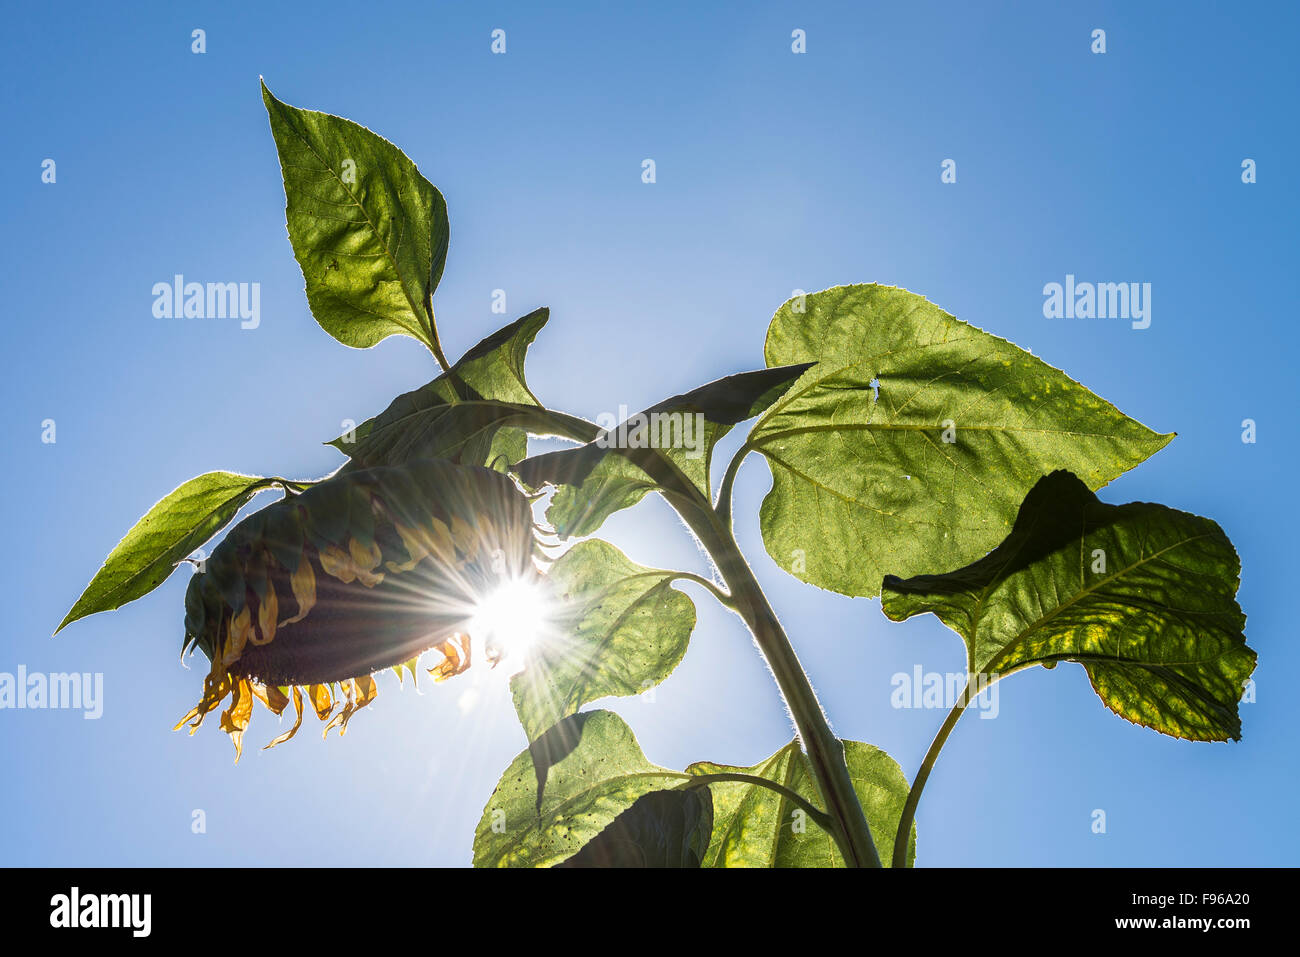 Sun shining through the petals of a large leaning sunflower. - Stock Image